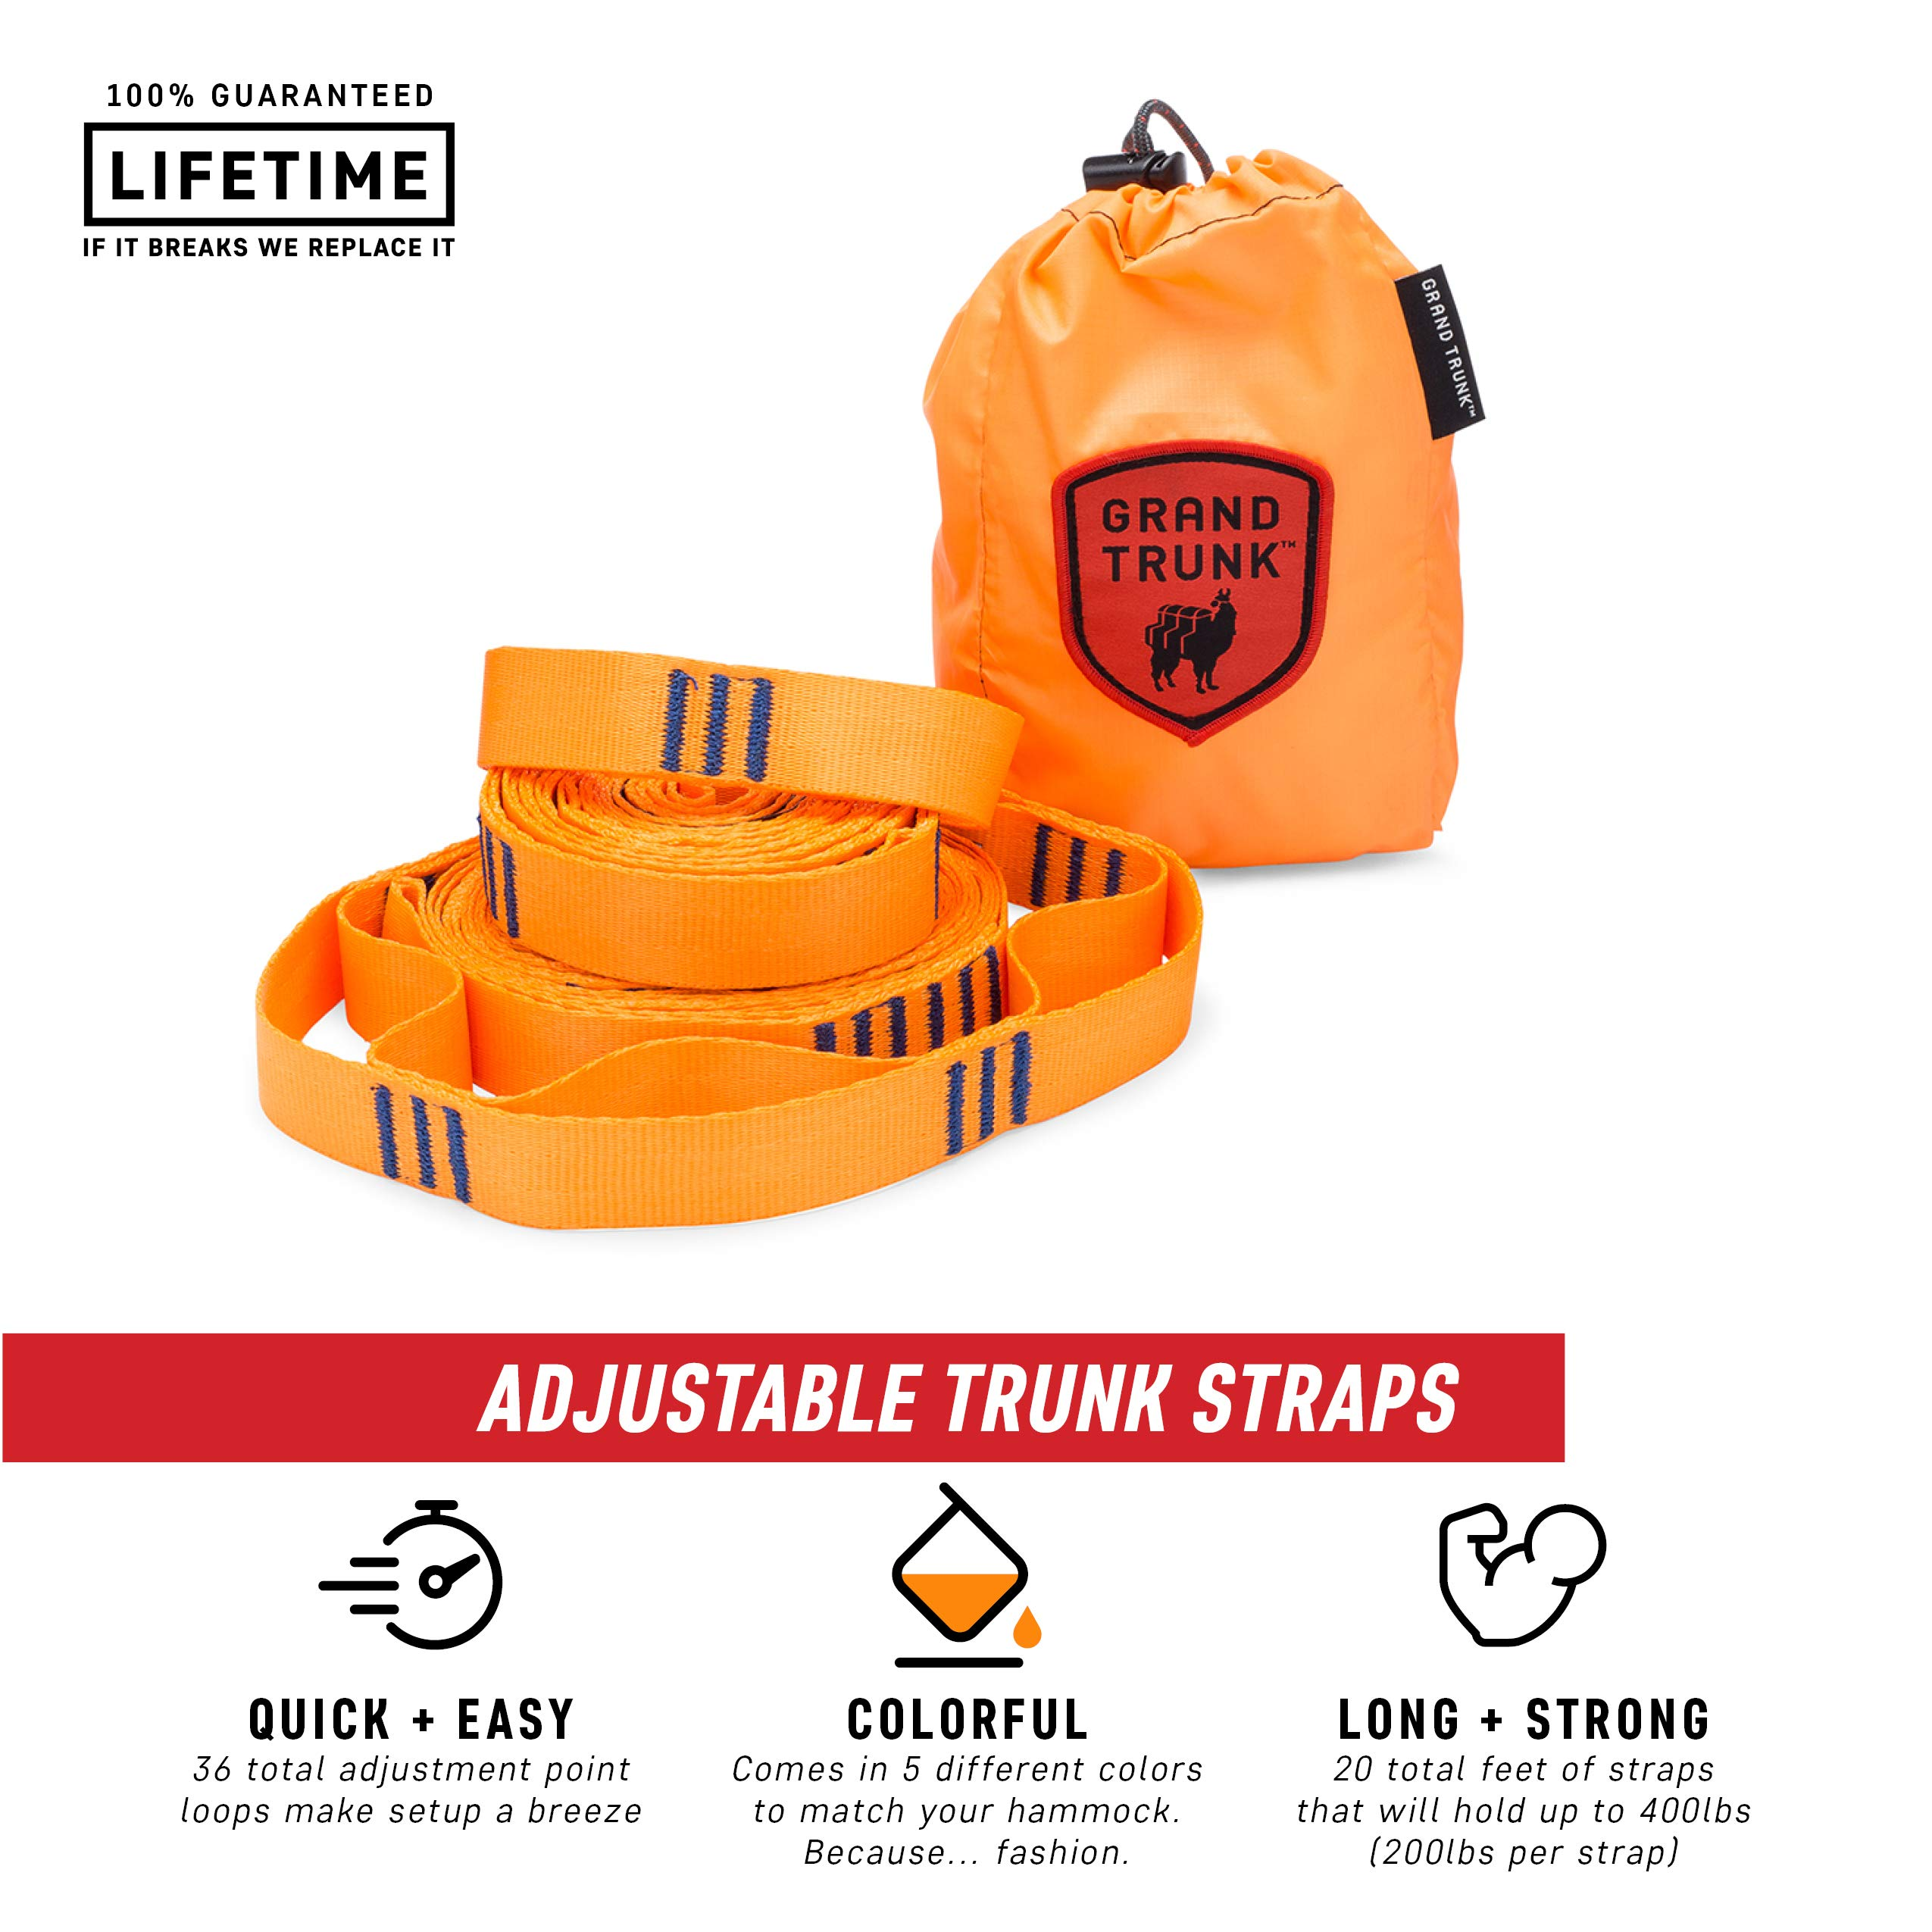 Grand Trunk Hammock Suspension System Trunk Straps, Orange, One Size by Grand Trunk